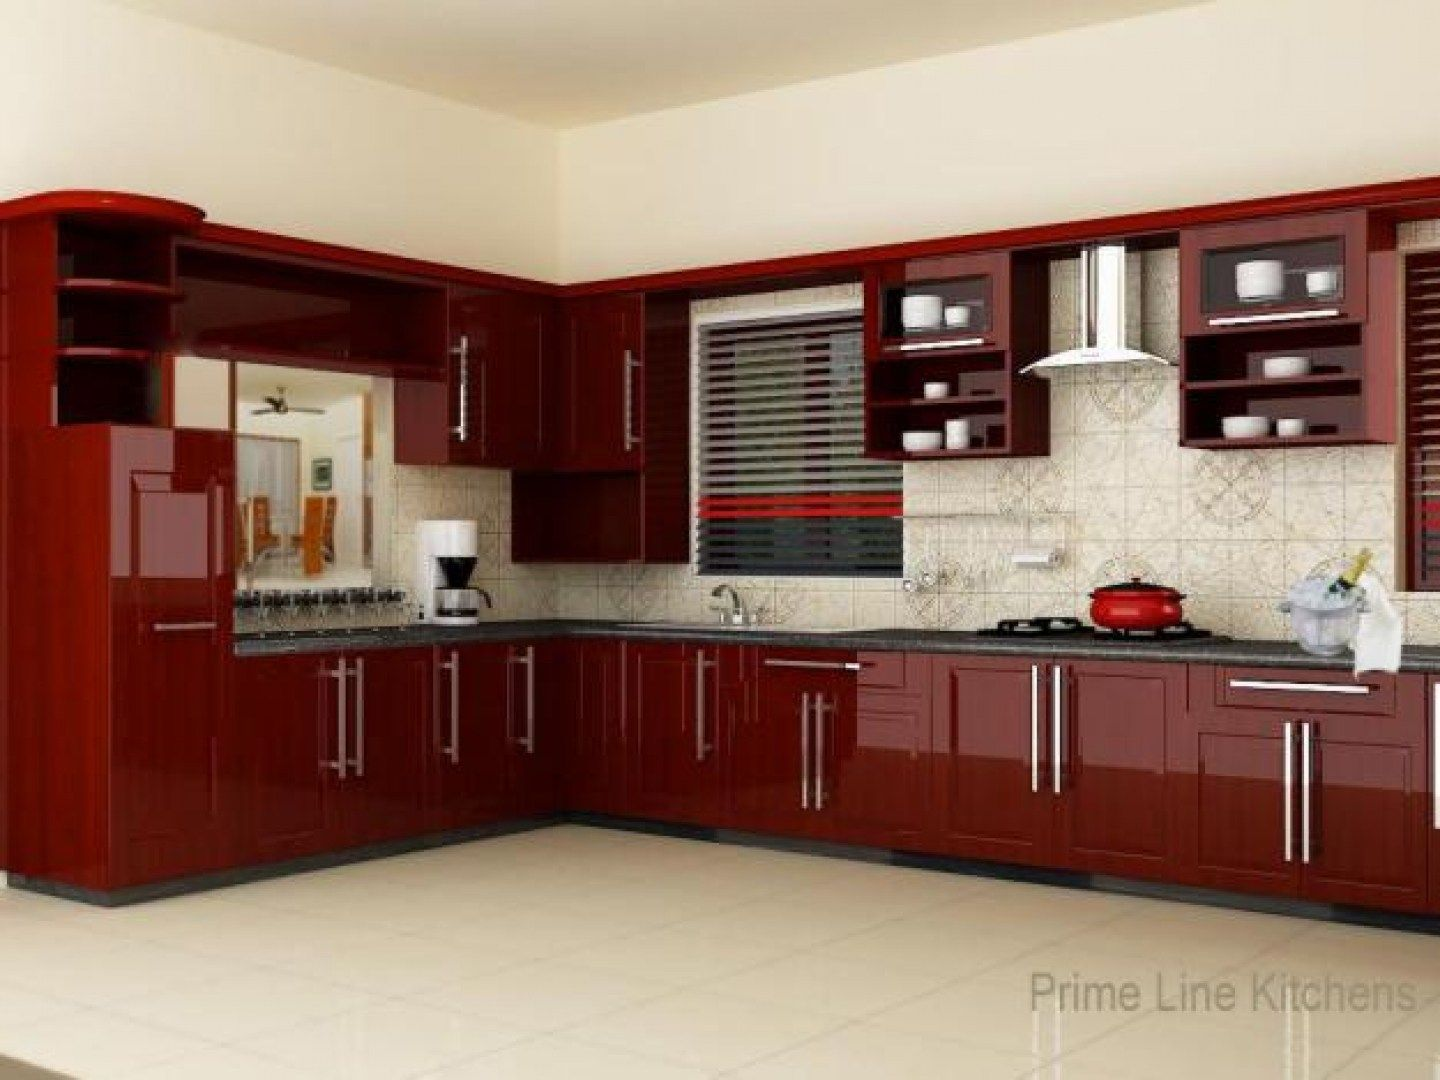 Kitchen design ideas kitchen woodwork designs hyderabad for Best kitchen cabinet layout